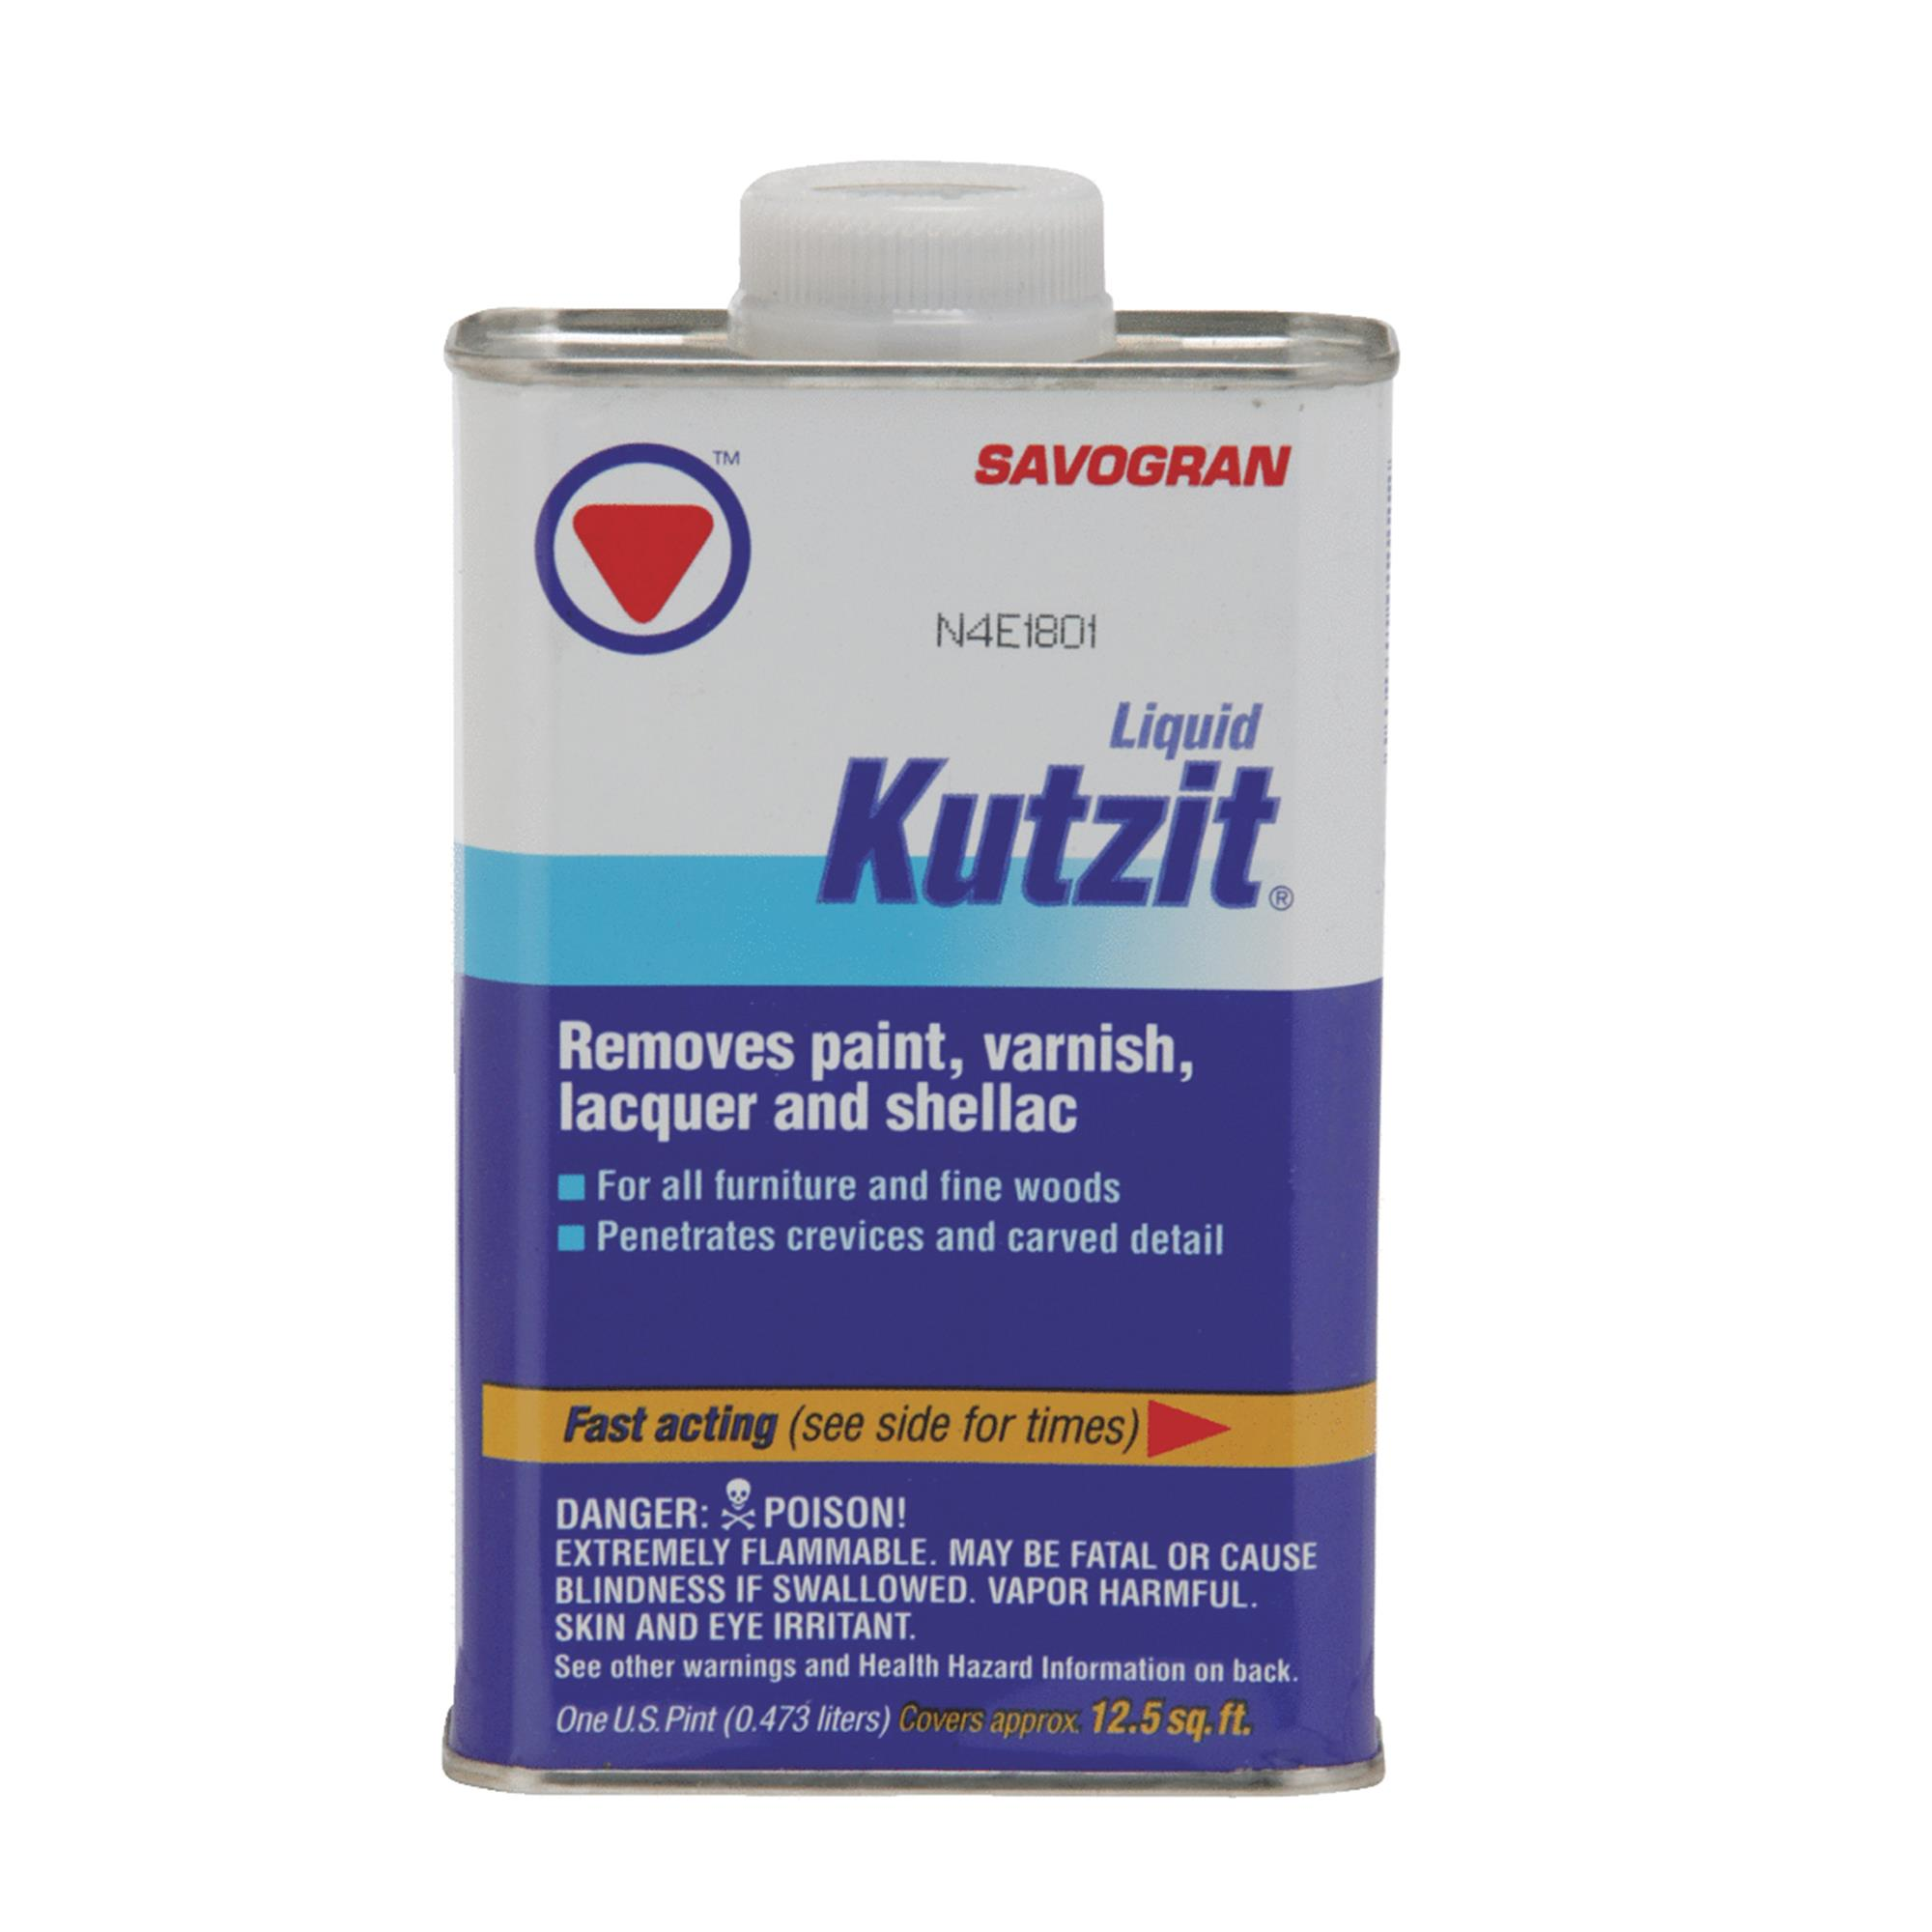 Savogran Kutzit Paint & Varnish Stripper